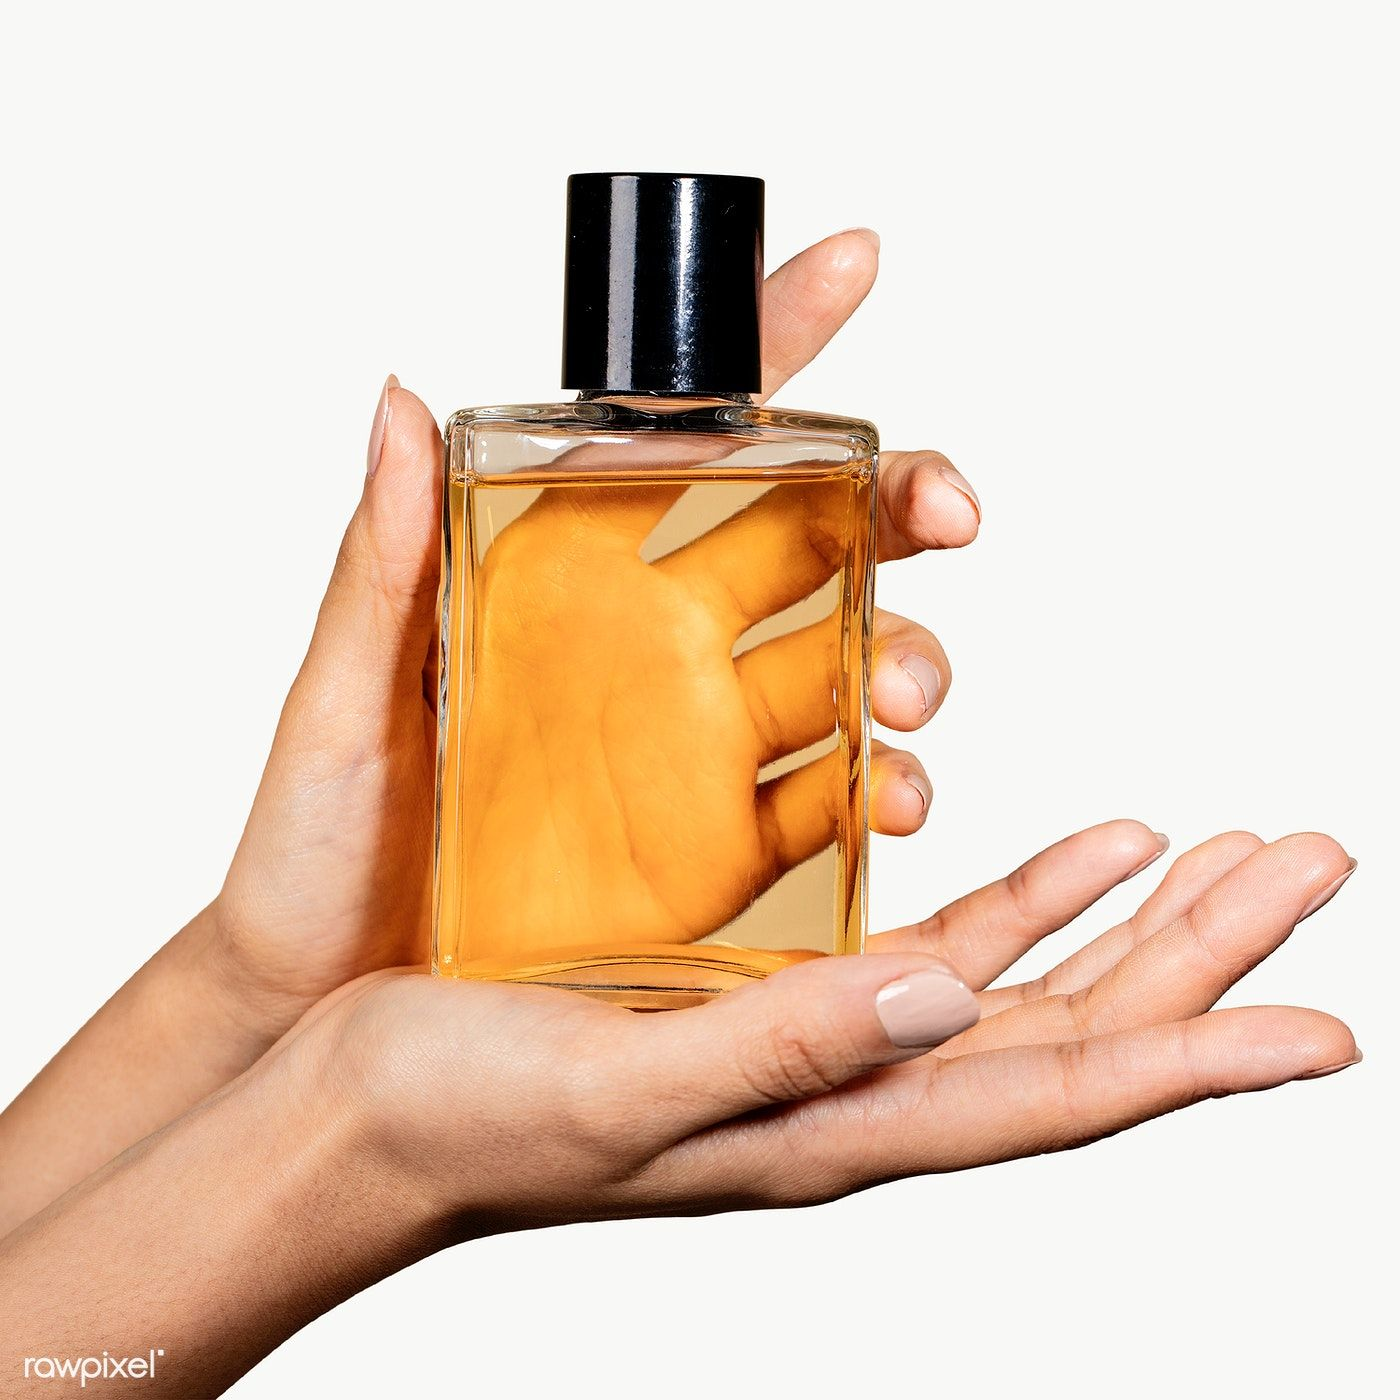 Woman Holding A Perfume Glass Bottle Transparent Png Premium Image By Rawpixel Com Mckinsey Perfume Fragrance Bottle Small Perfume Bottles